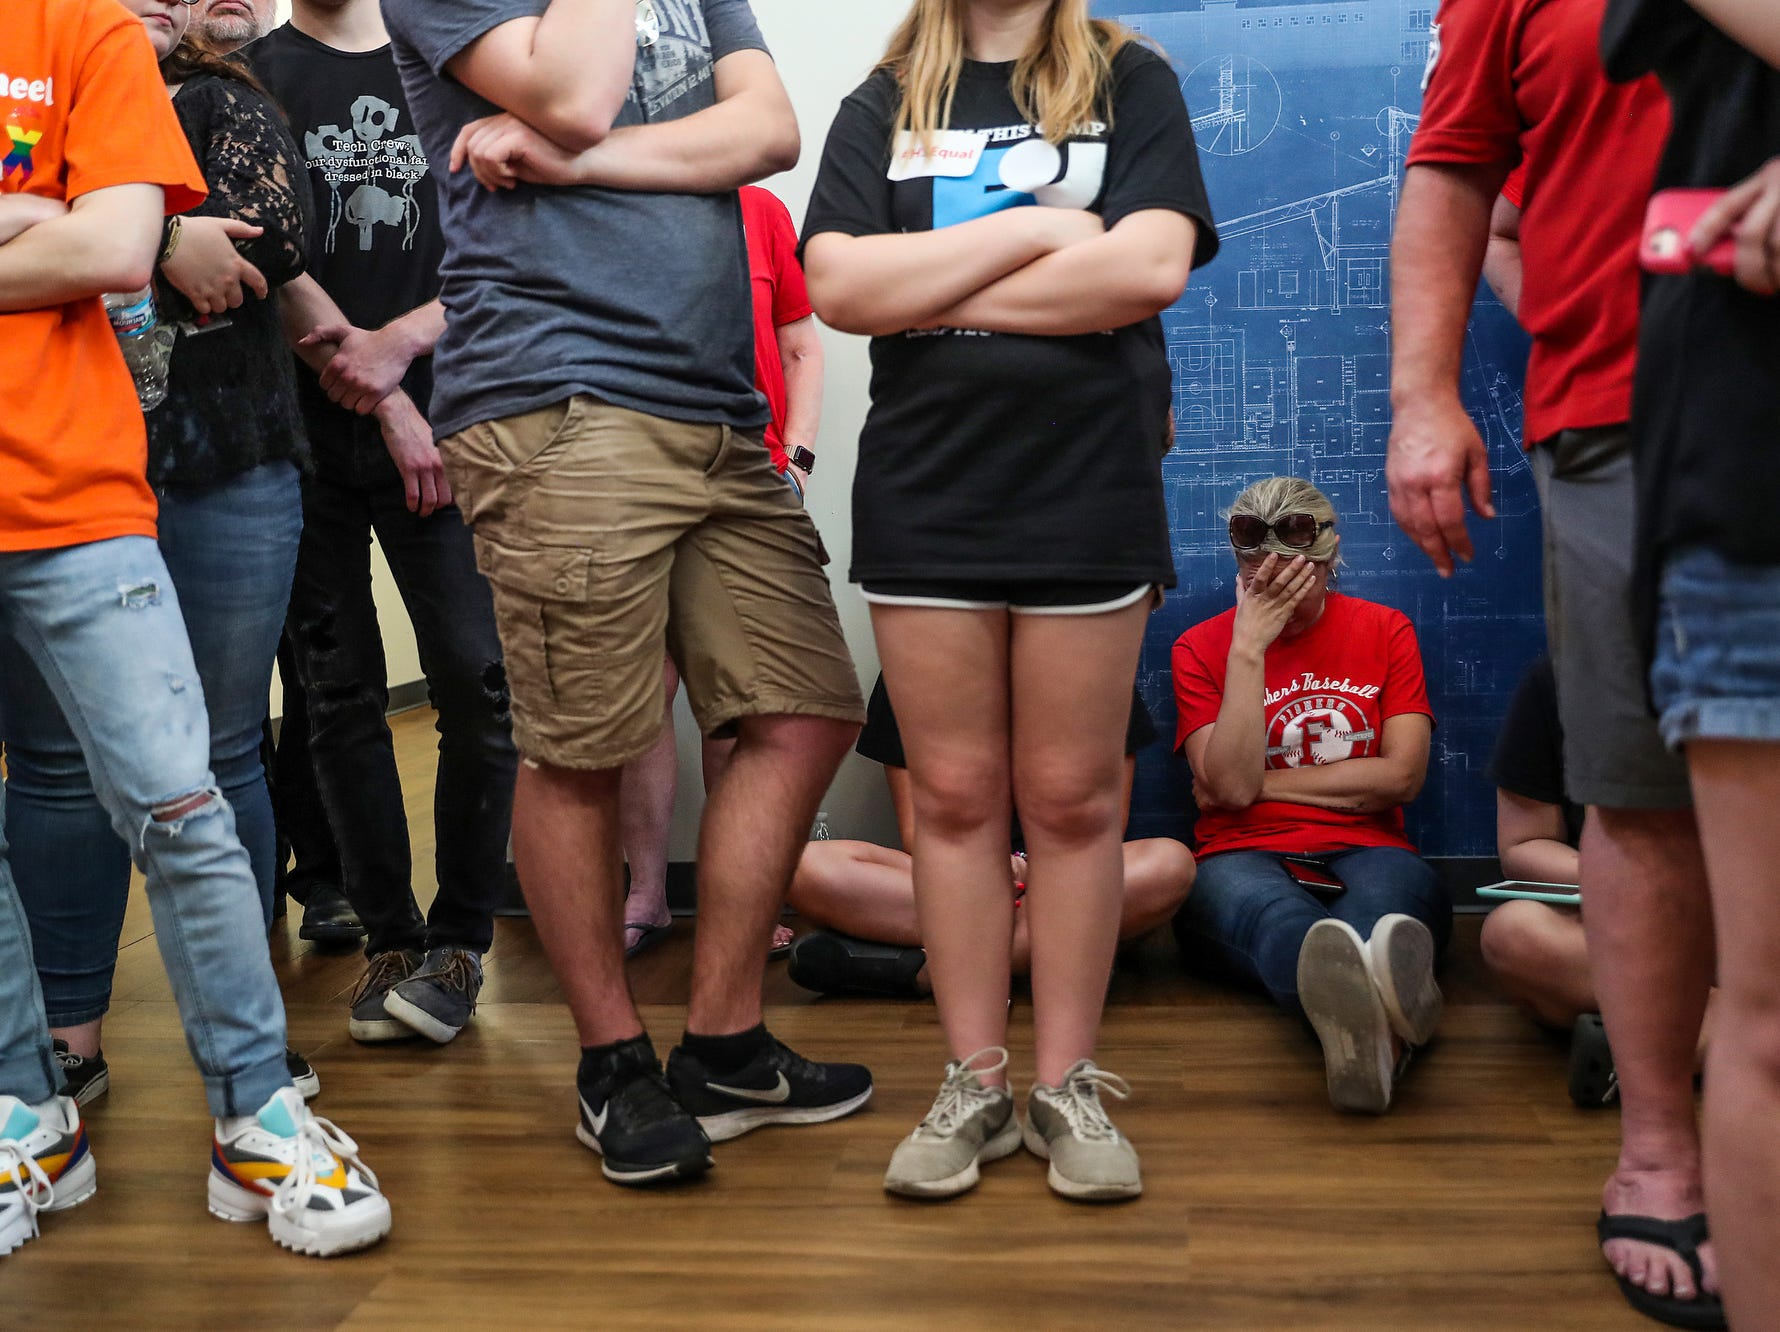 People sit and stand in the hallway to listen to the Hamilton Southeastern Schools board meeting at Cumberland Road Elementary in Fishers, Ind., Wednesday, May 8, 2019. The board voted 5-2 to adopt an anti-discrimination policy including language specifically prohibiting discrimination and harassment based on gender identity and sexual orientation.